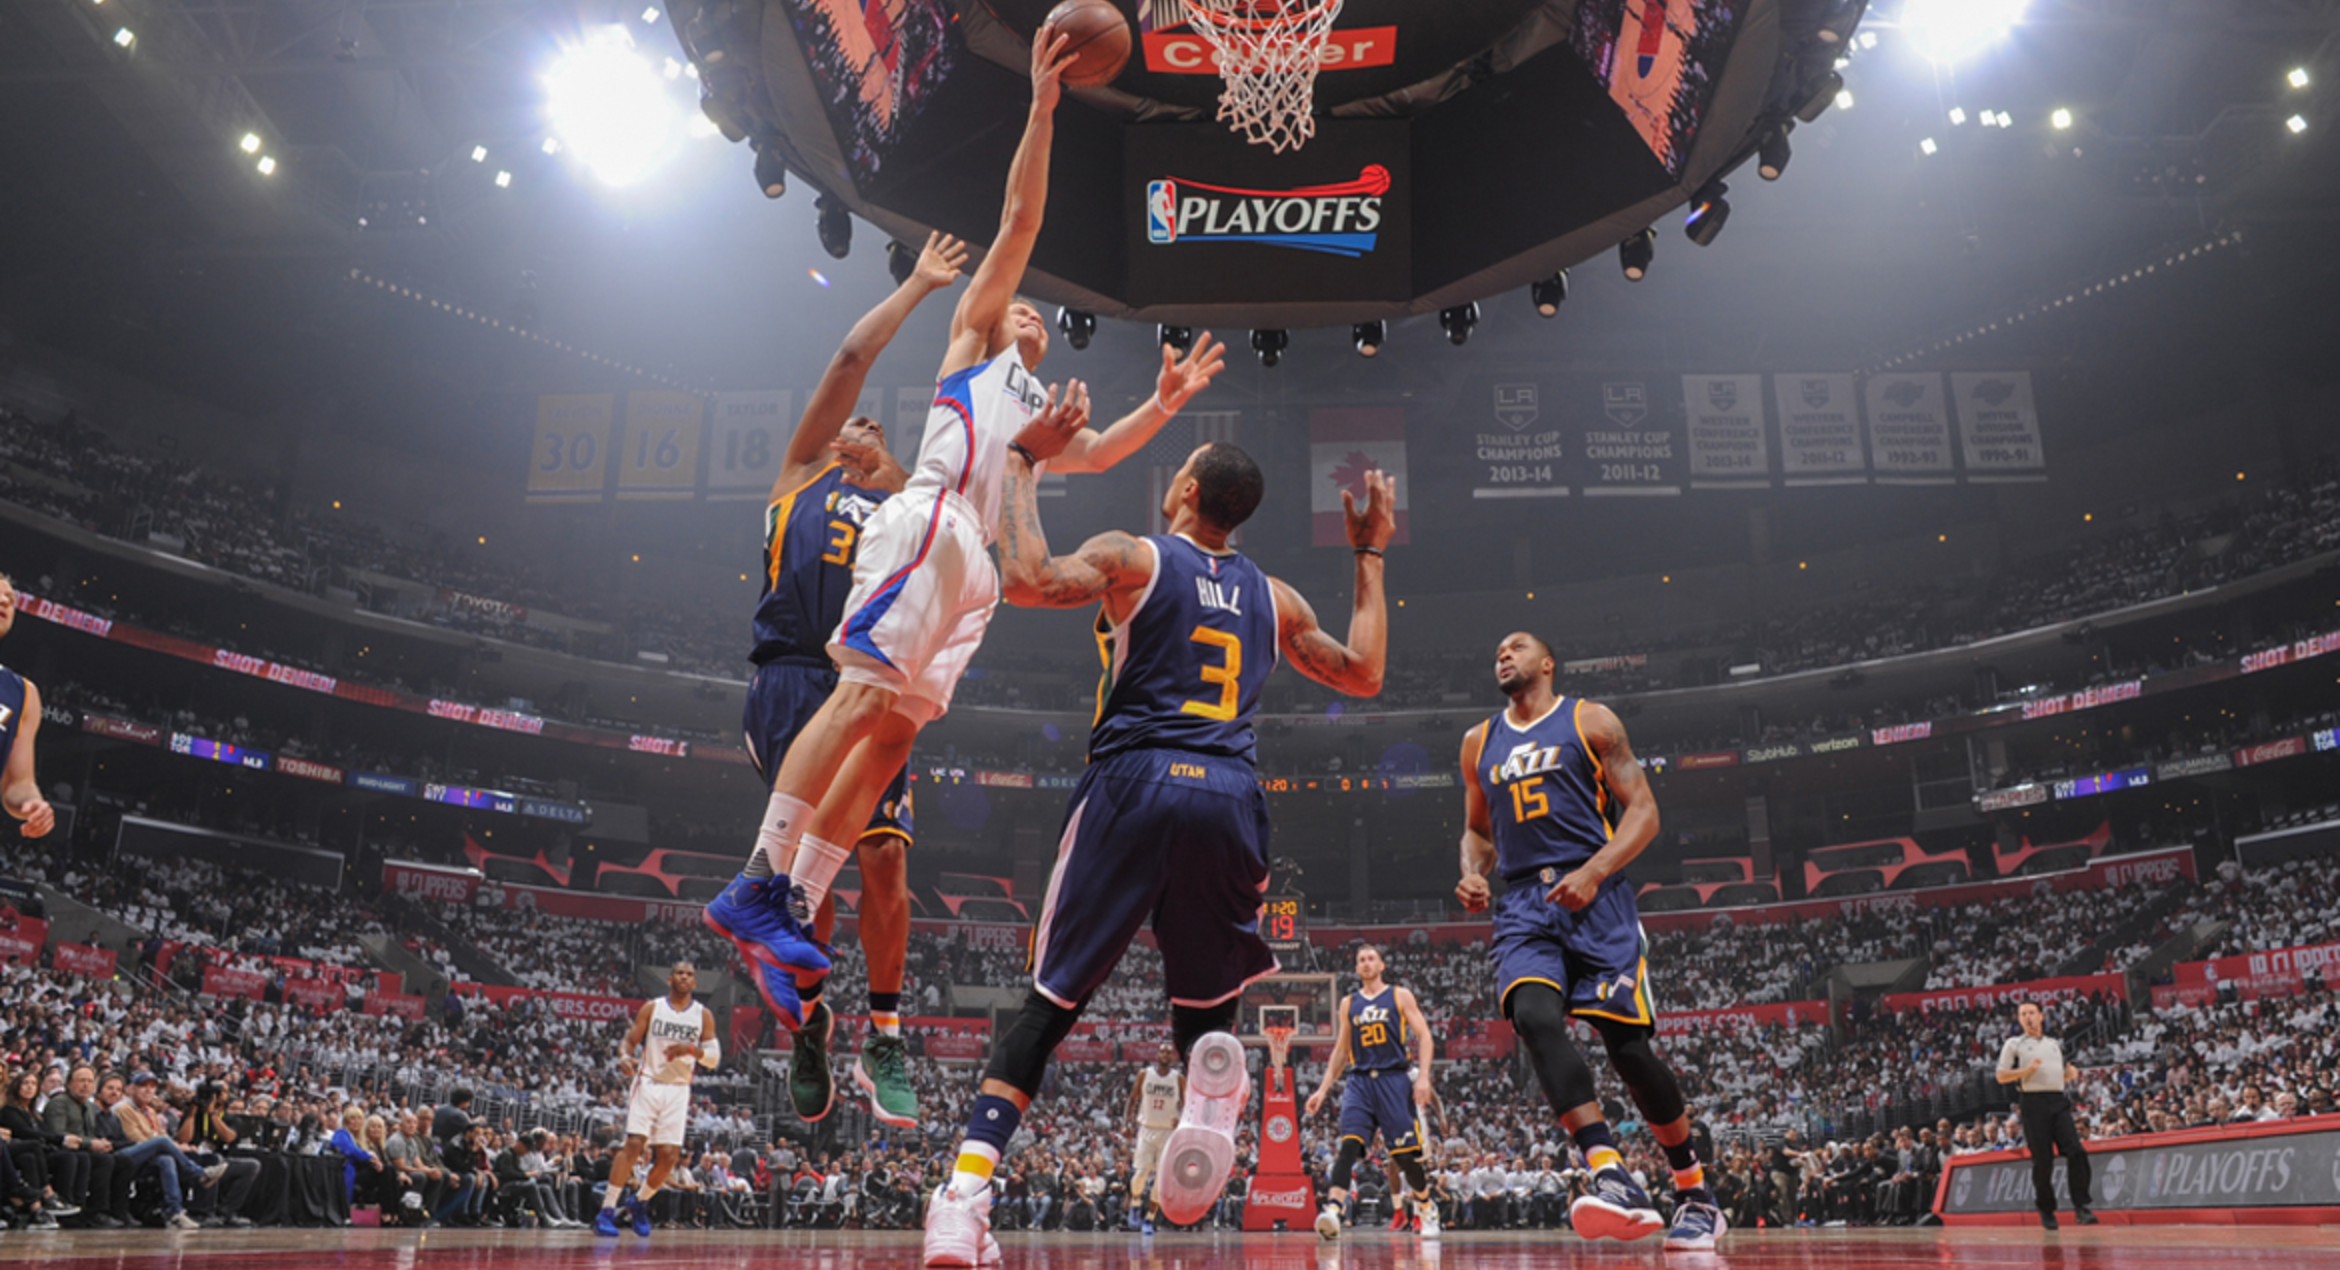 Clippers Travel To One Of The Toughest Places To Play